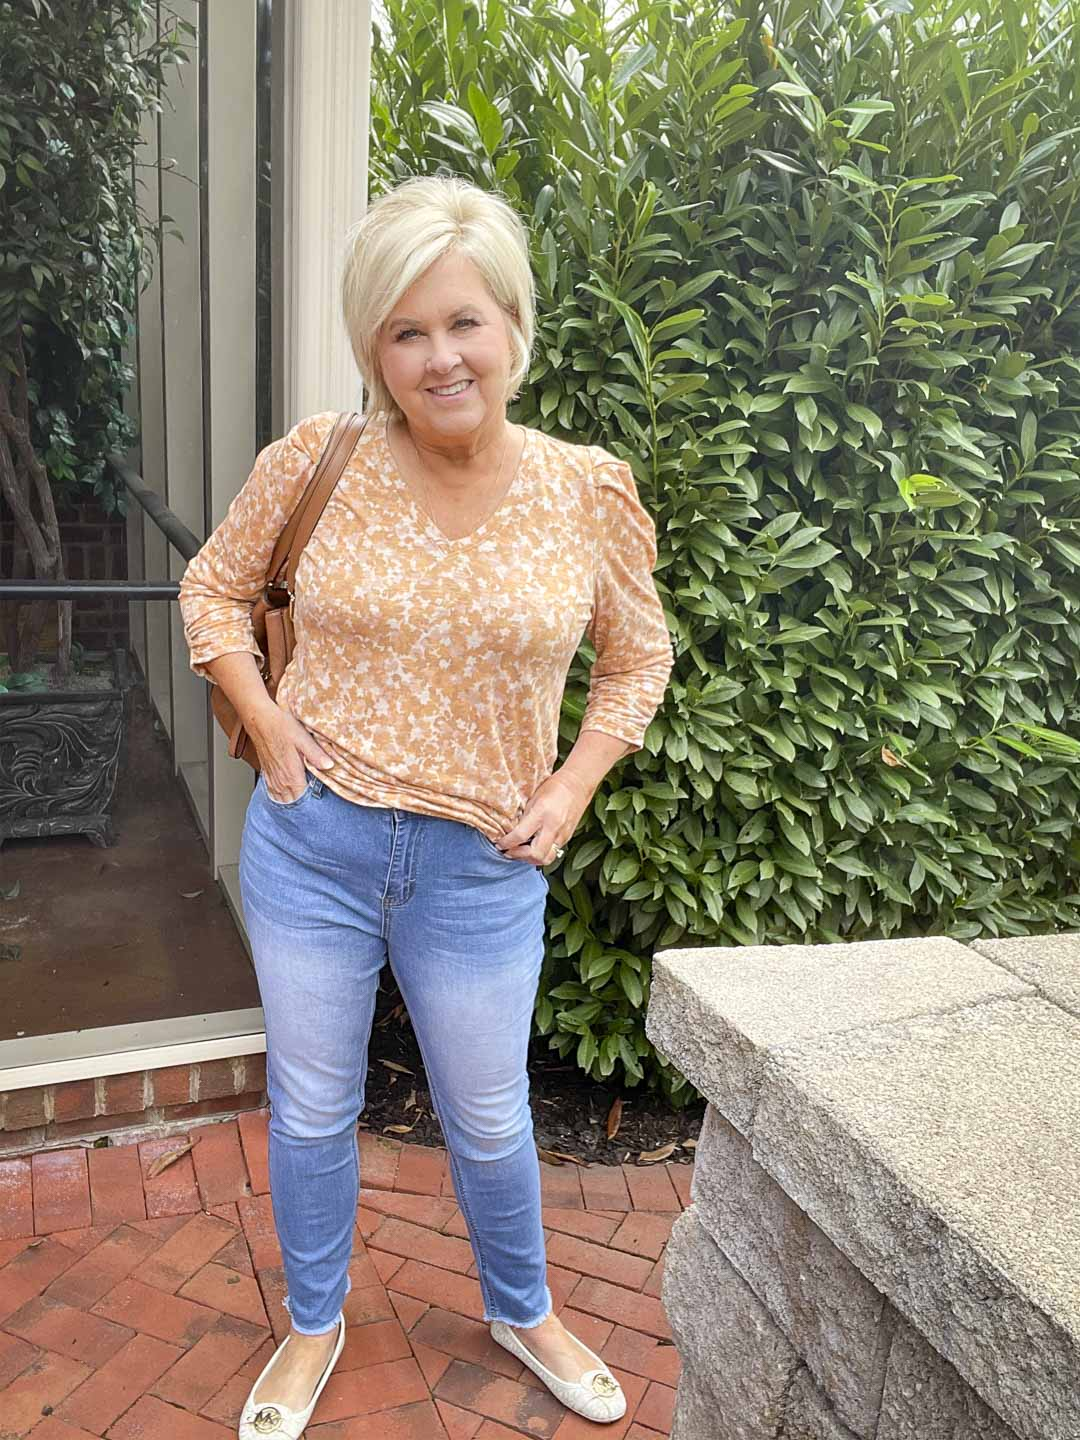 Over 40 Fashion Blogger, Tania Stephens, is wearing one of her puff sleeve tops with a light pair of jeans and monogrammed loafers